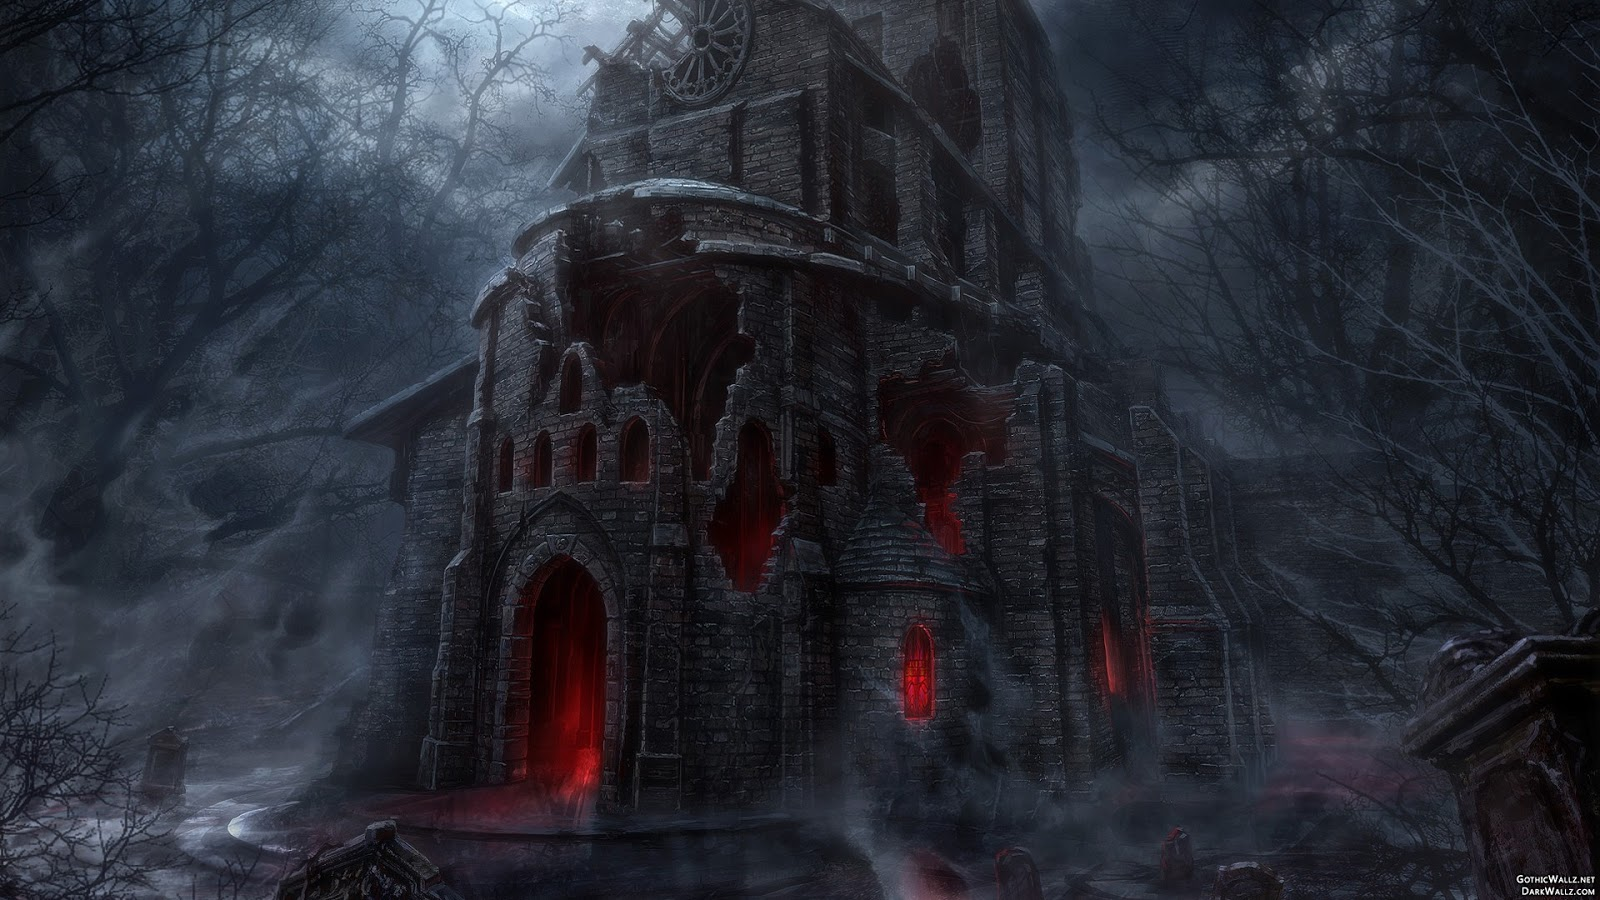 Dark halloween scary creepy gothic house | Dark Gothic Wallpaper Download